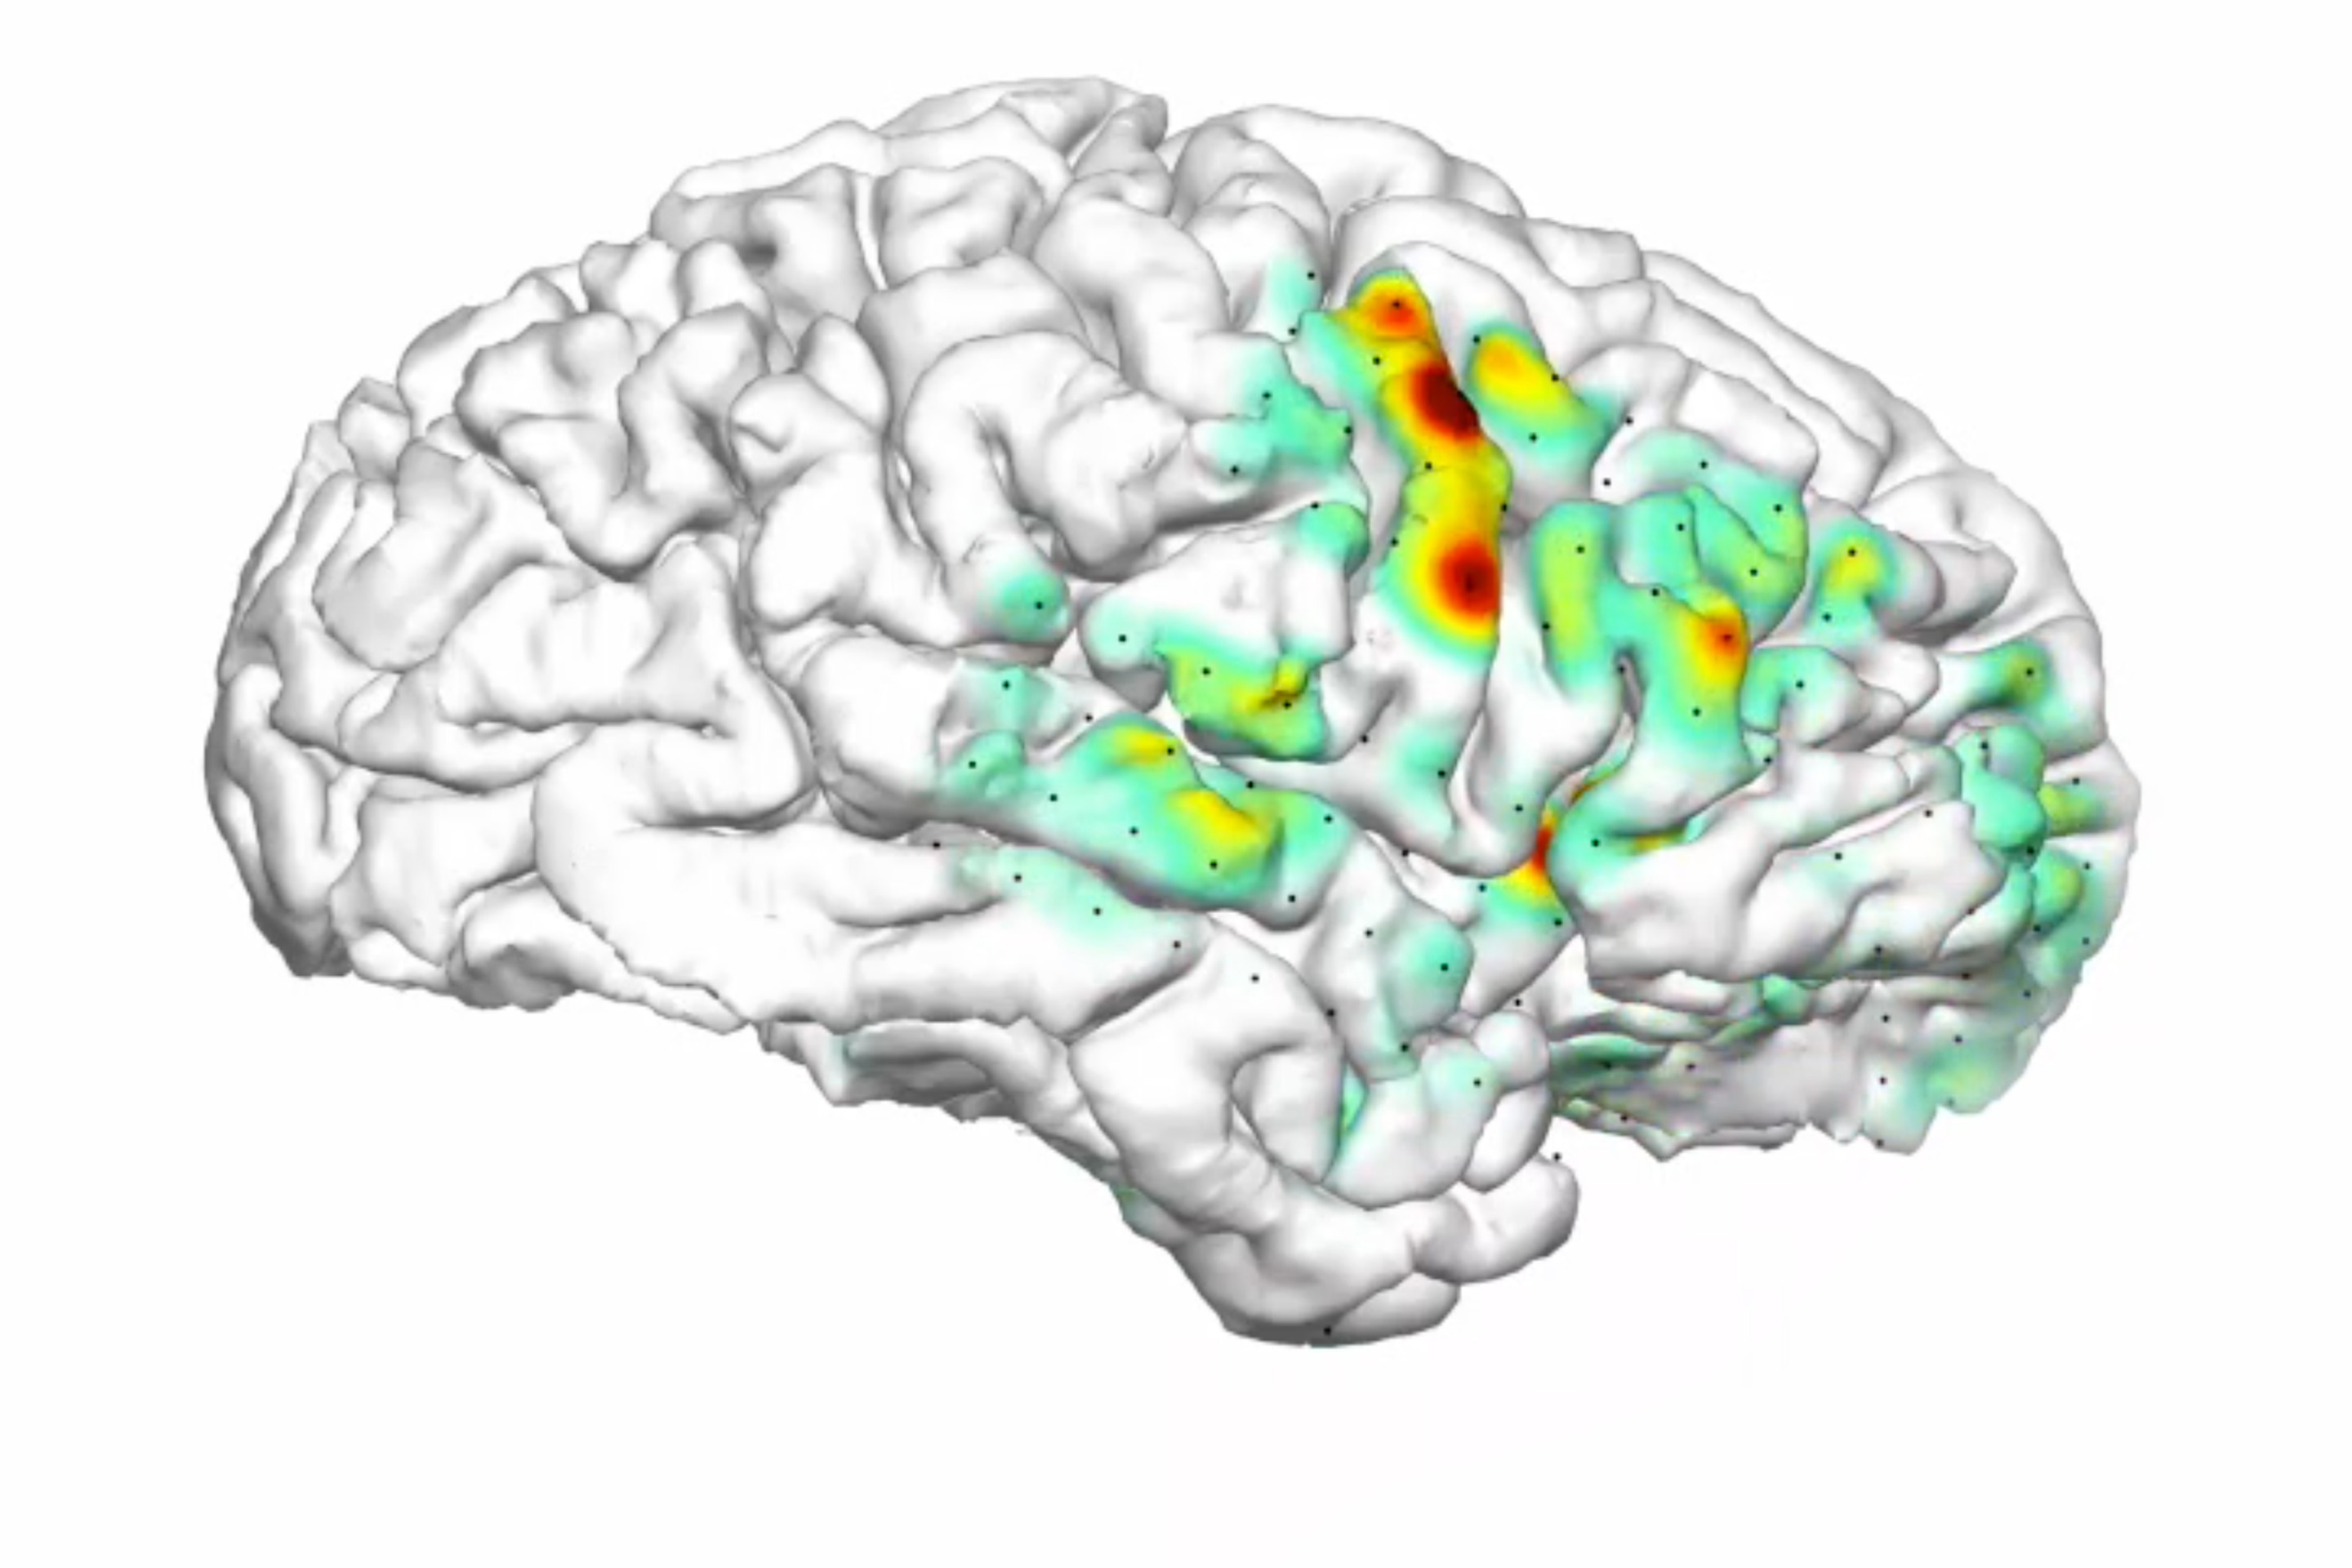 3-D 'Heat Map' Animation Shows How Seizures Spread in the Brains of Patients with Epilepsy